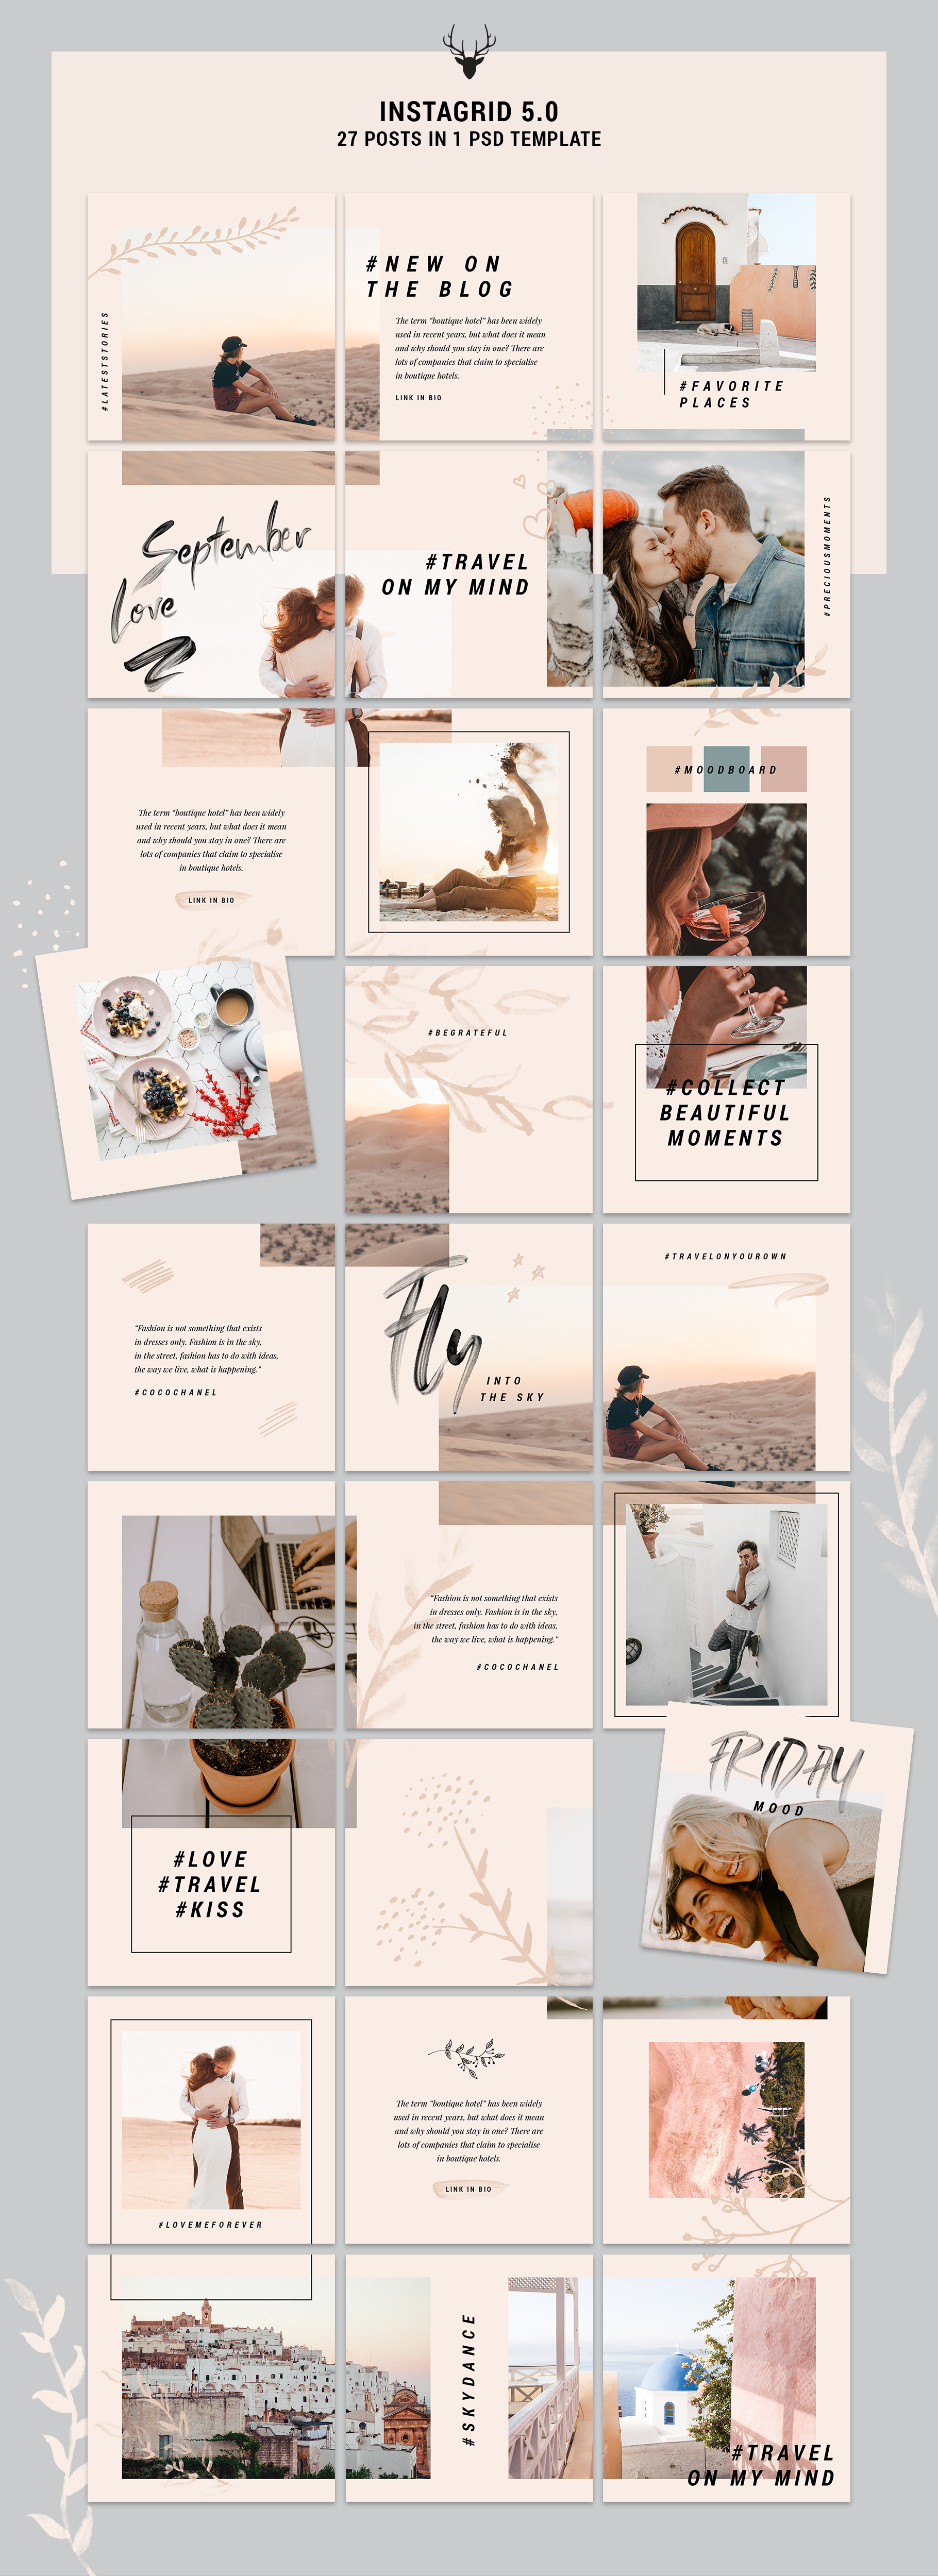 InstaGrid 5.0 - Creative & Modern Instagram Puzzle Template example image 12